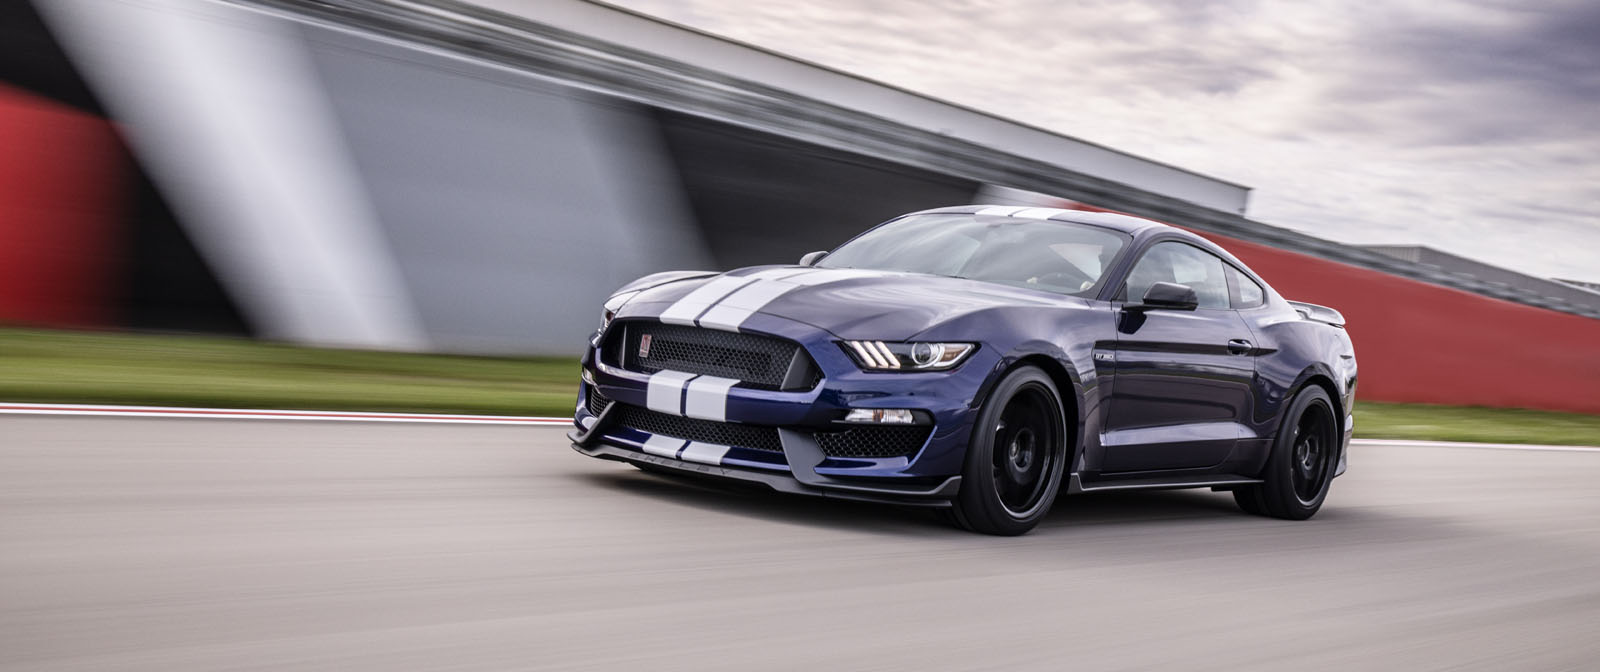 2019 Shelby GT350 Drops, Gifts You With Faster Lap Times ...